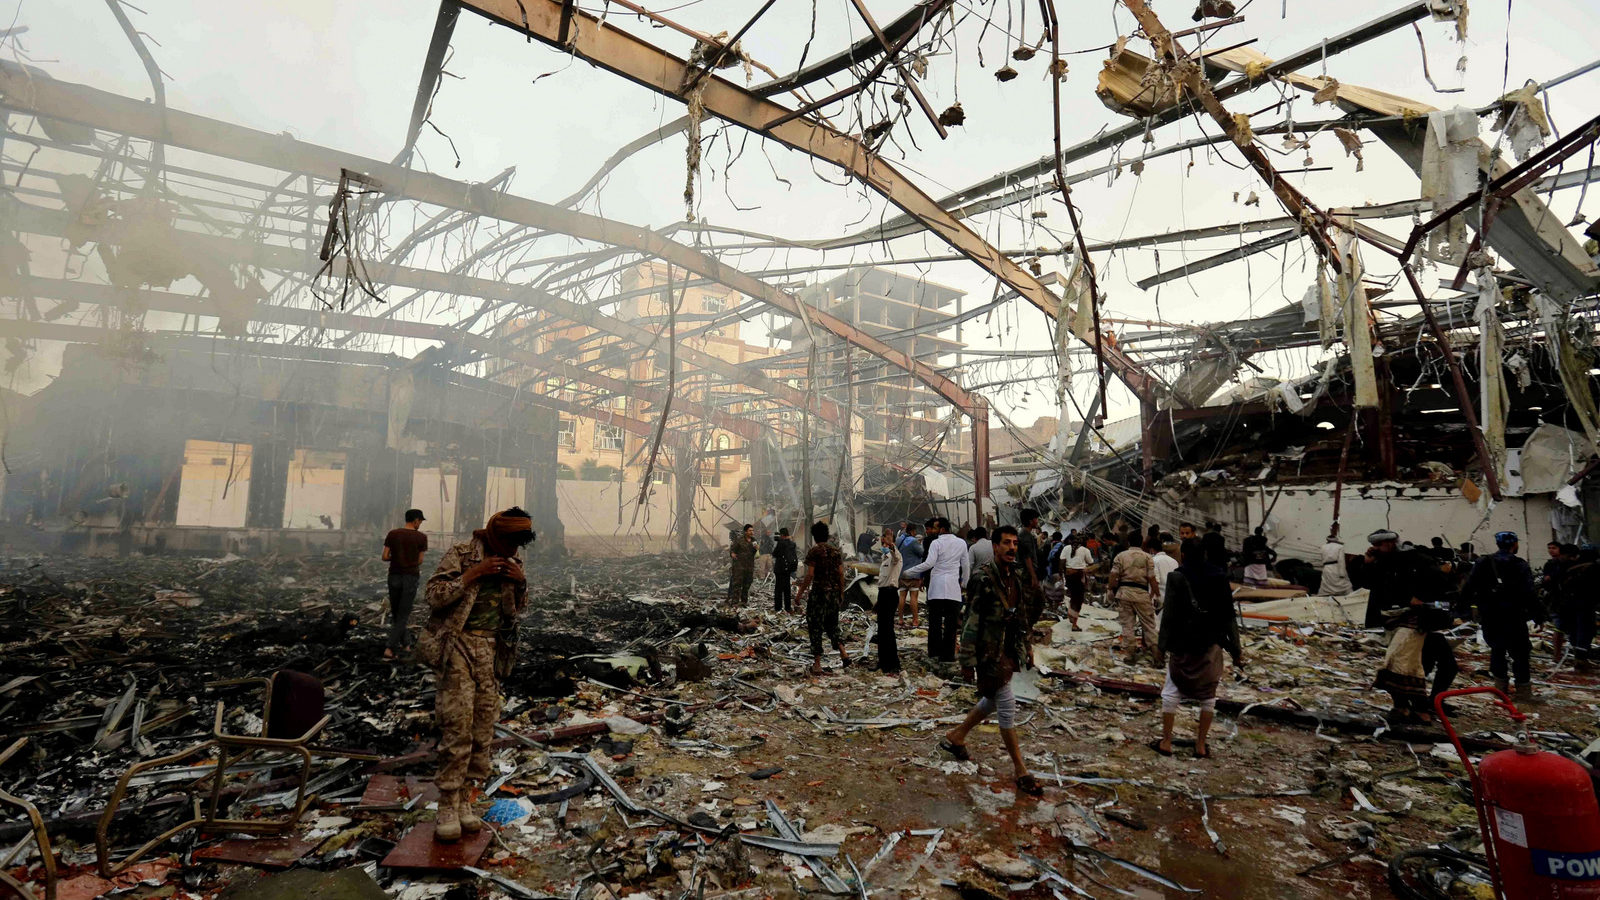 People inspect the aftermath of a Saudi-led coalition airstrike on a funeral hall in Sanaa, Yemen, Saturday, Oct. 8, 2016.